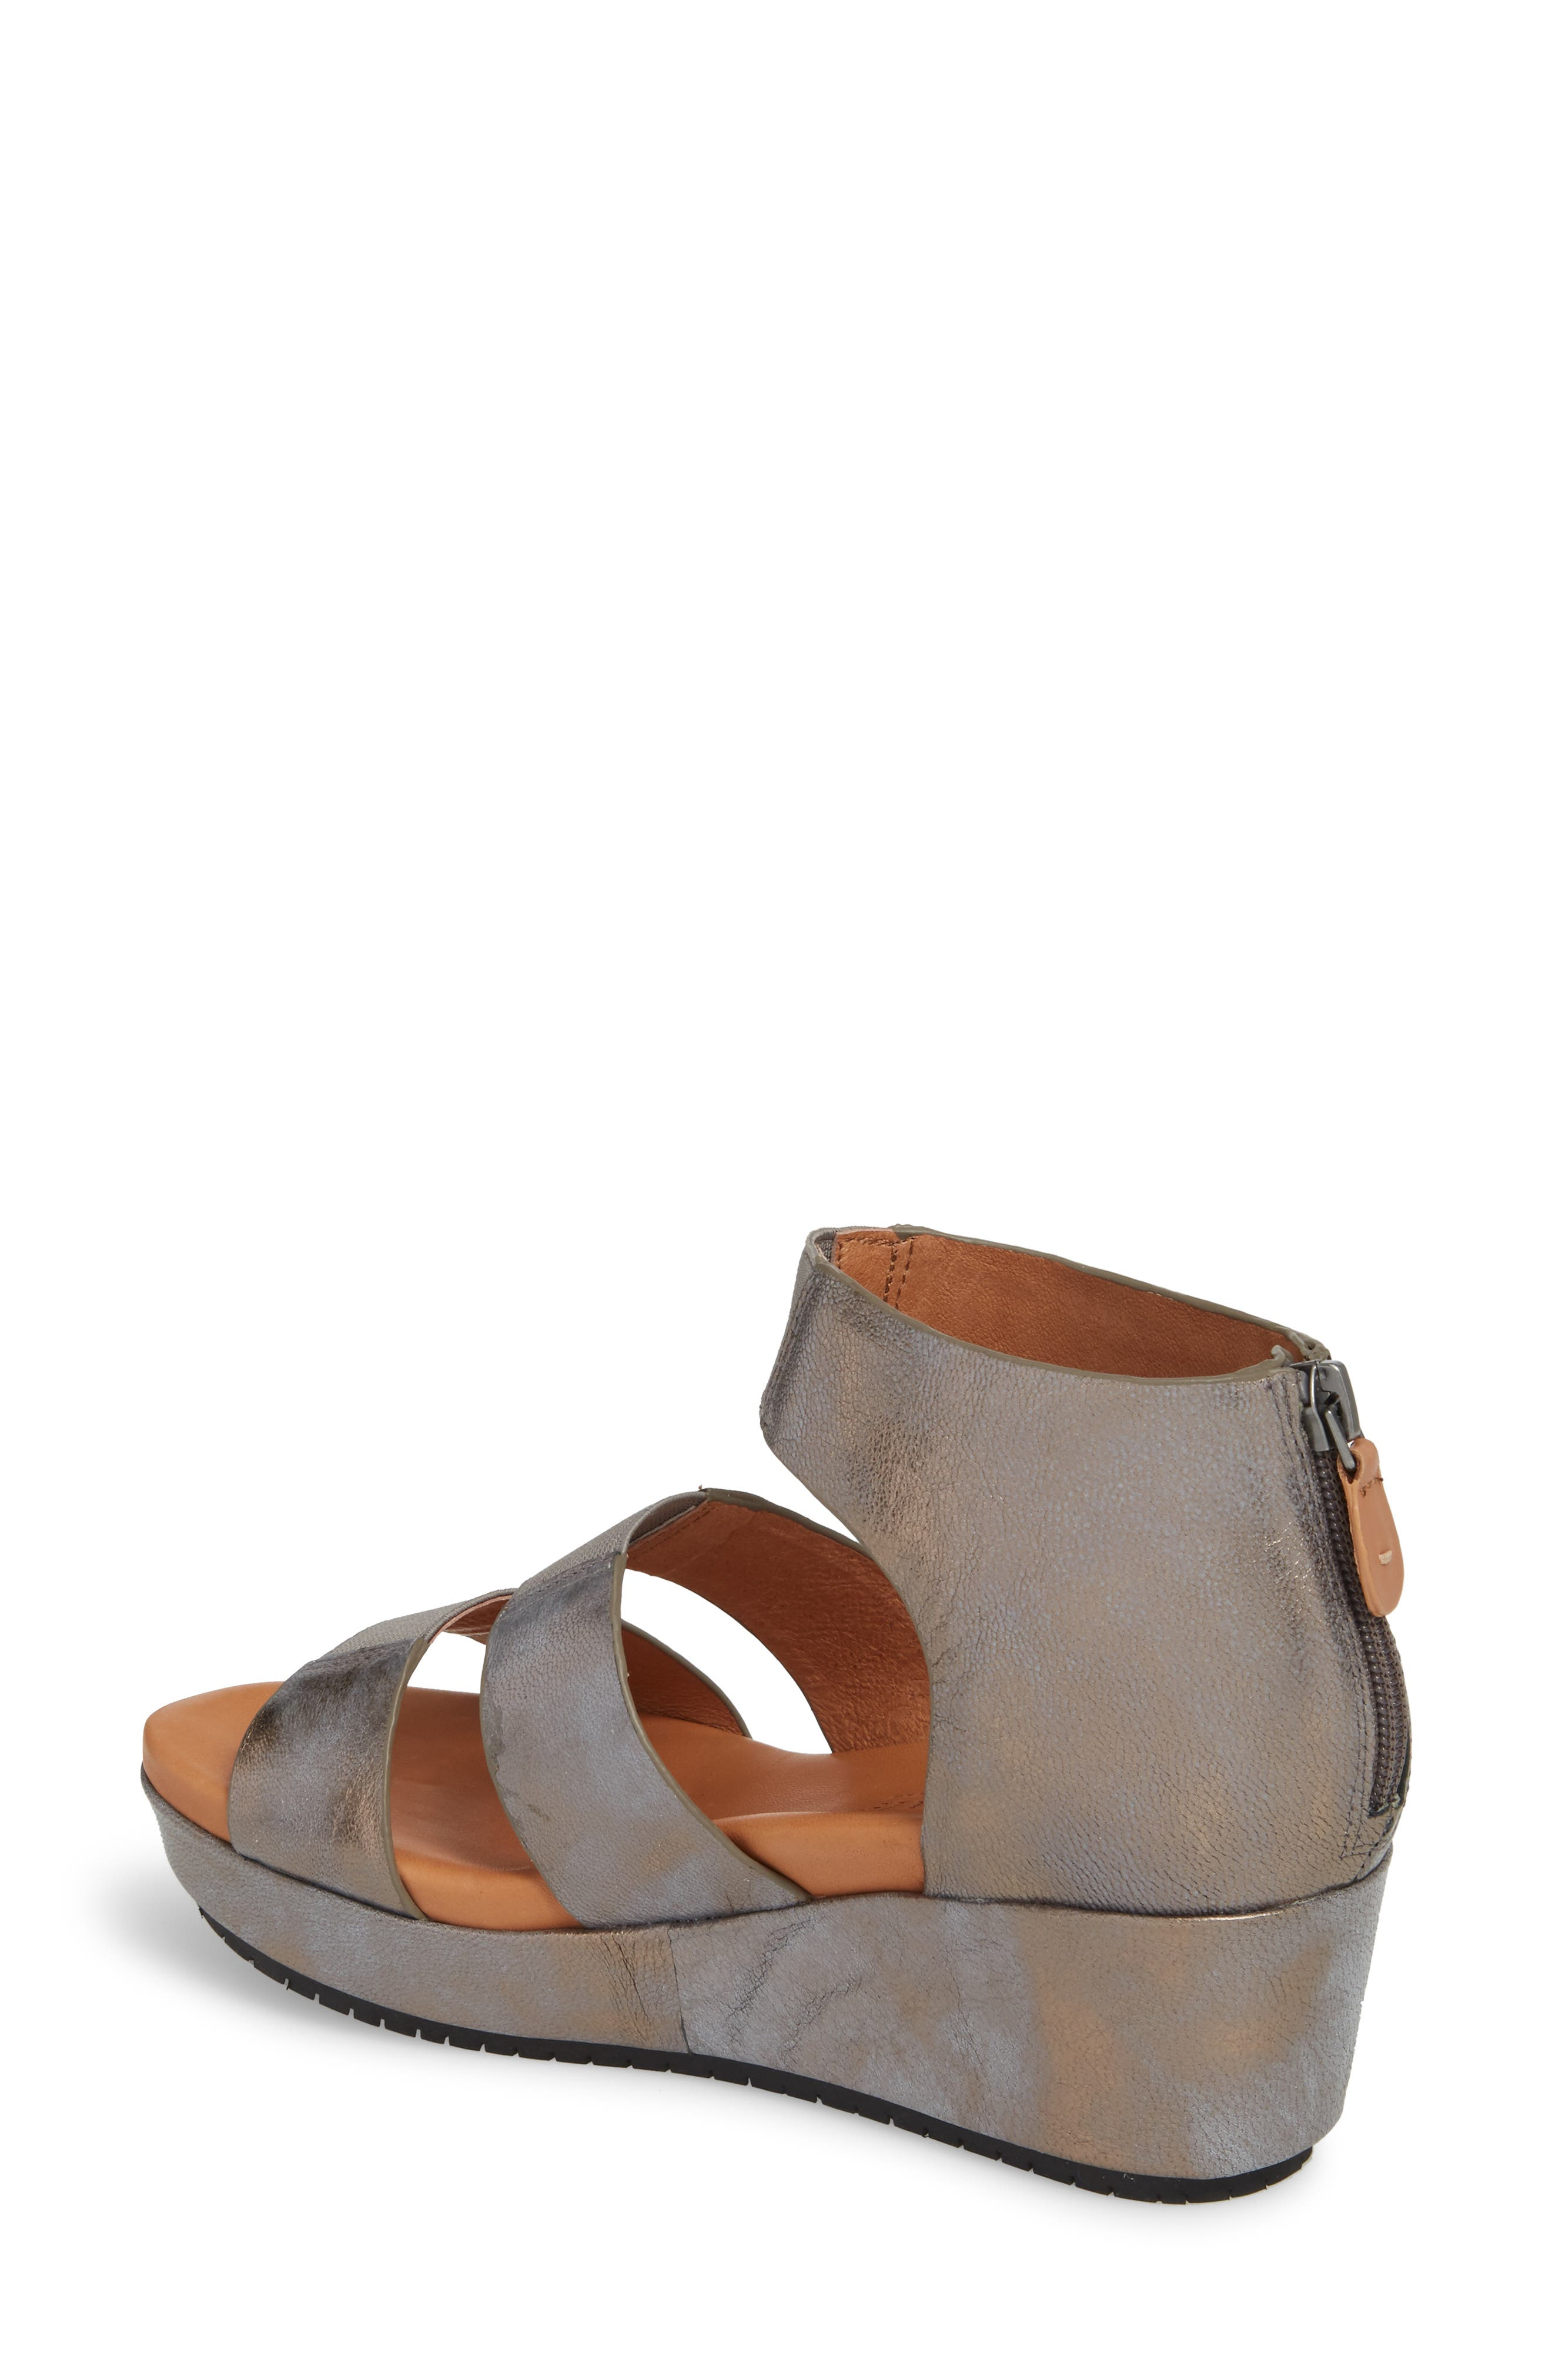 GENTLE SOULS BY KENNETH COLE, Milena Wedge Sandal, Alternate thumbnail 2, color, PEWTER METALLIC LEATHER